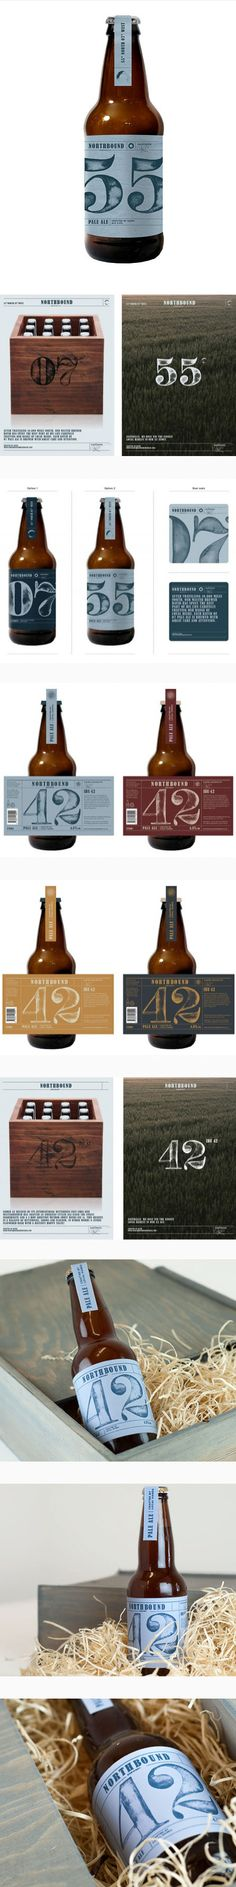 Northbound Brewing Co. by Paperjam PD